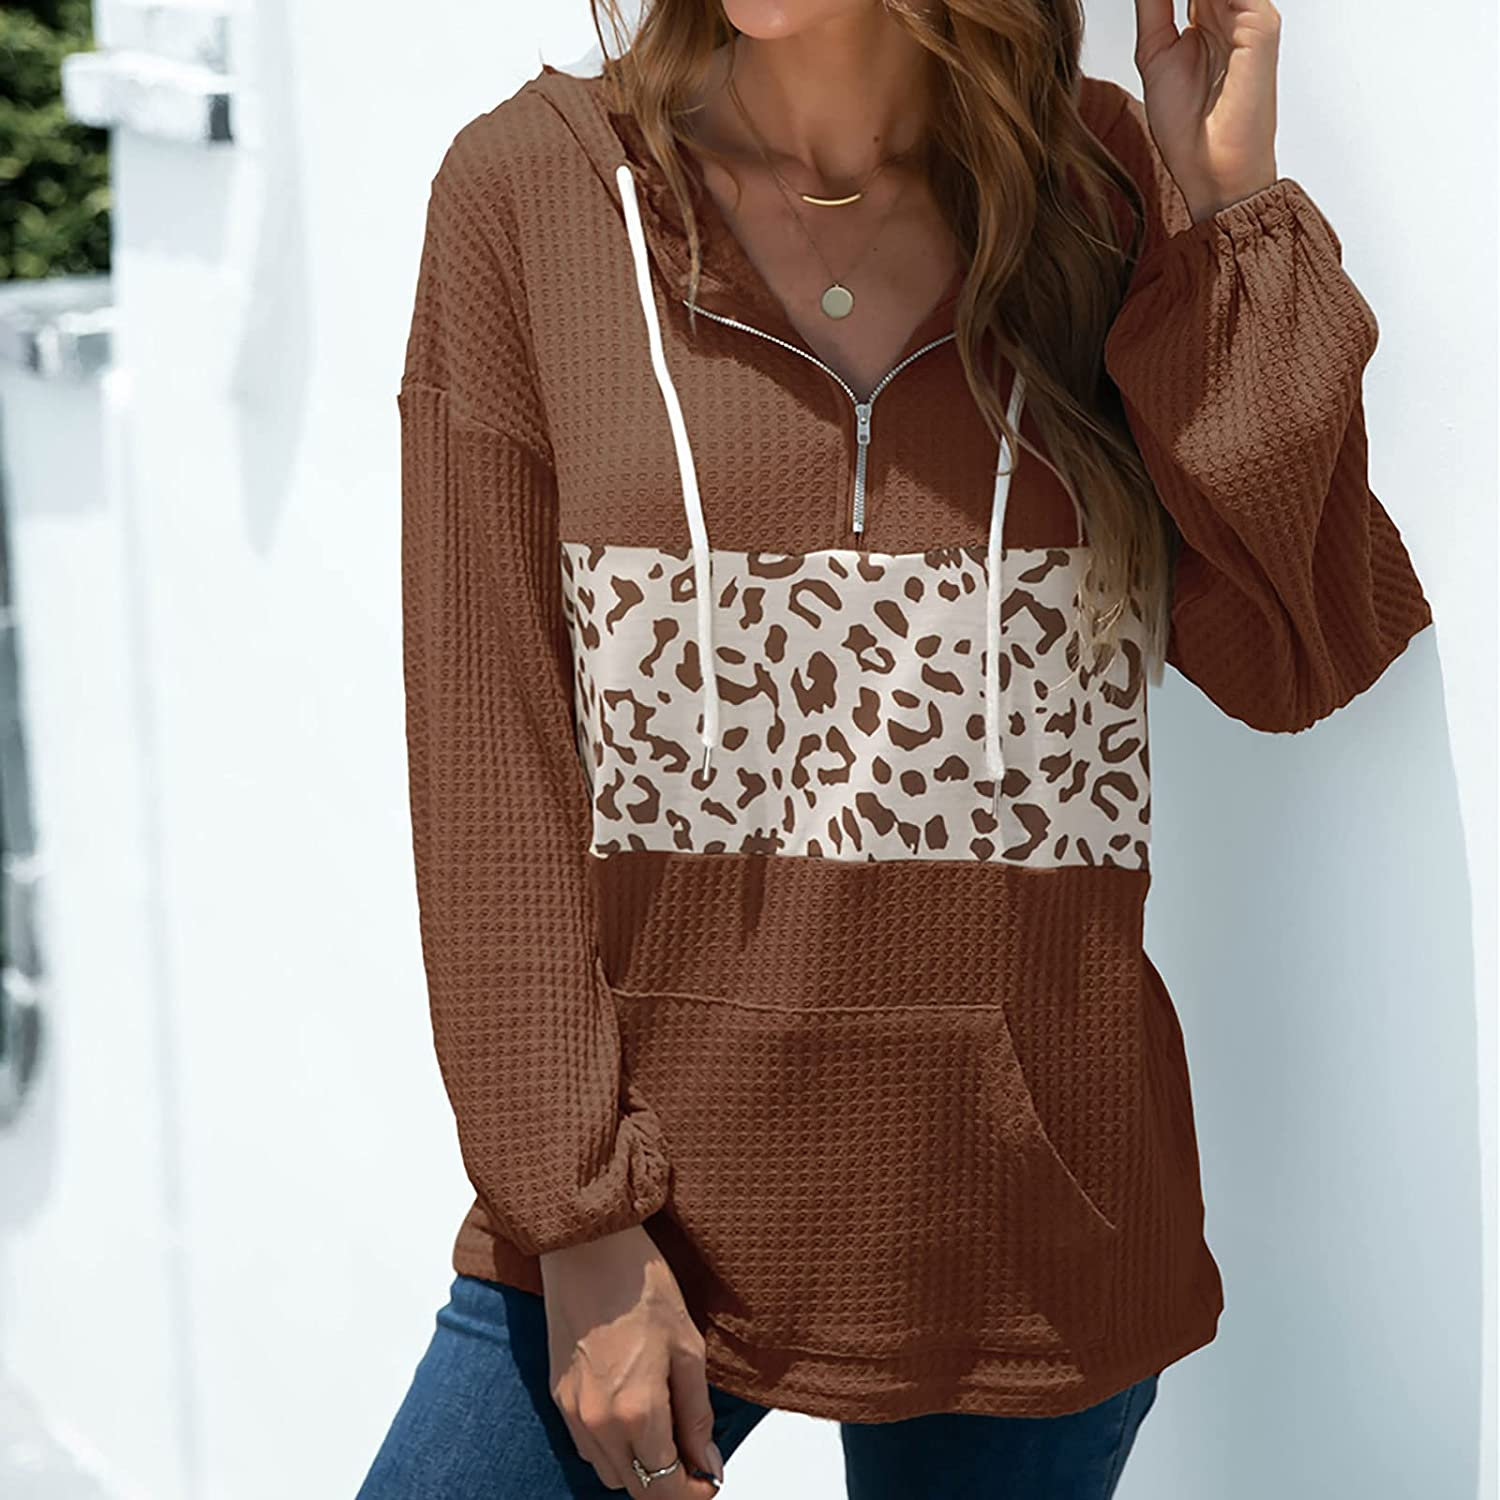 GERsome Women's Hoodies 1/4 Zipper V Neck Long Sleeve Leopard Stitching Sweatshirts with Pockets Fashion Casual Tops Blouse Coffee